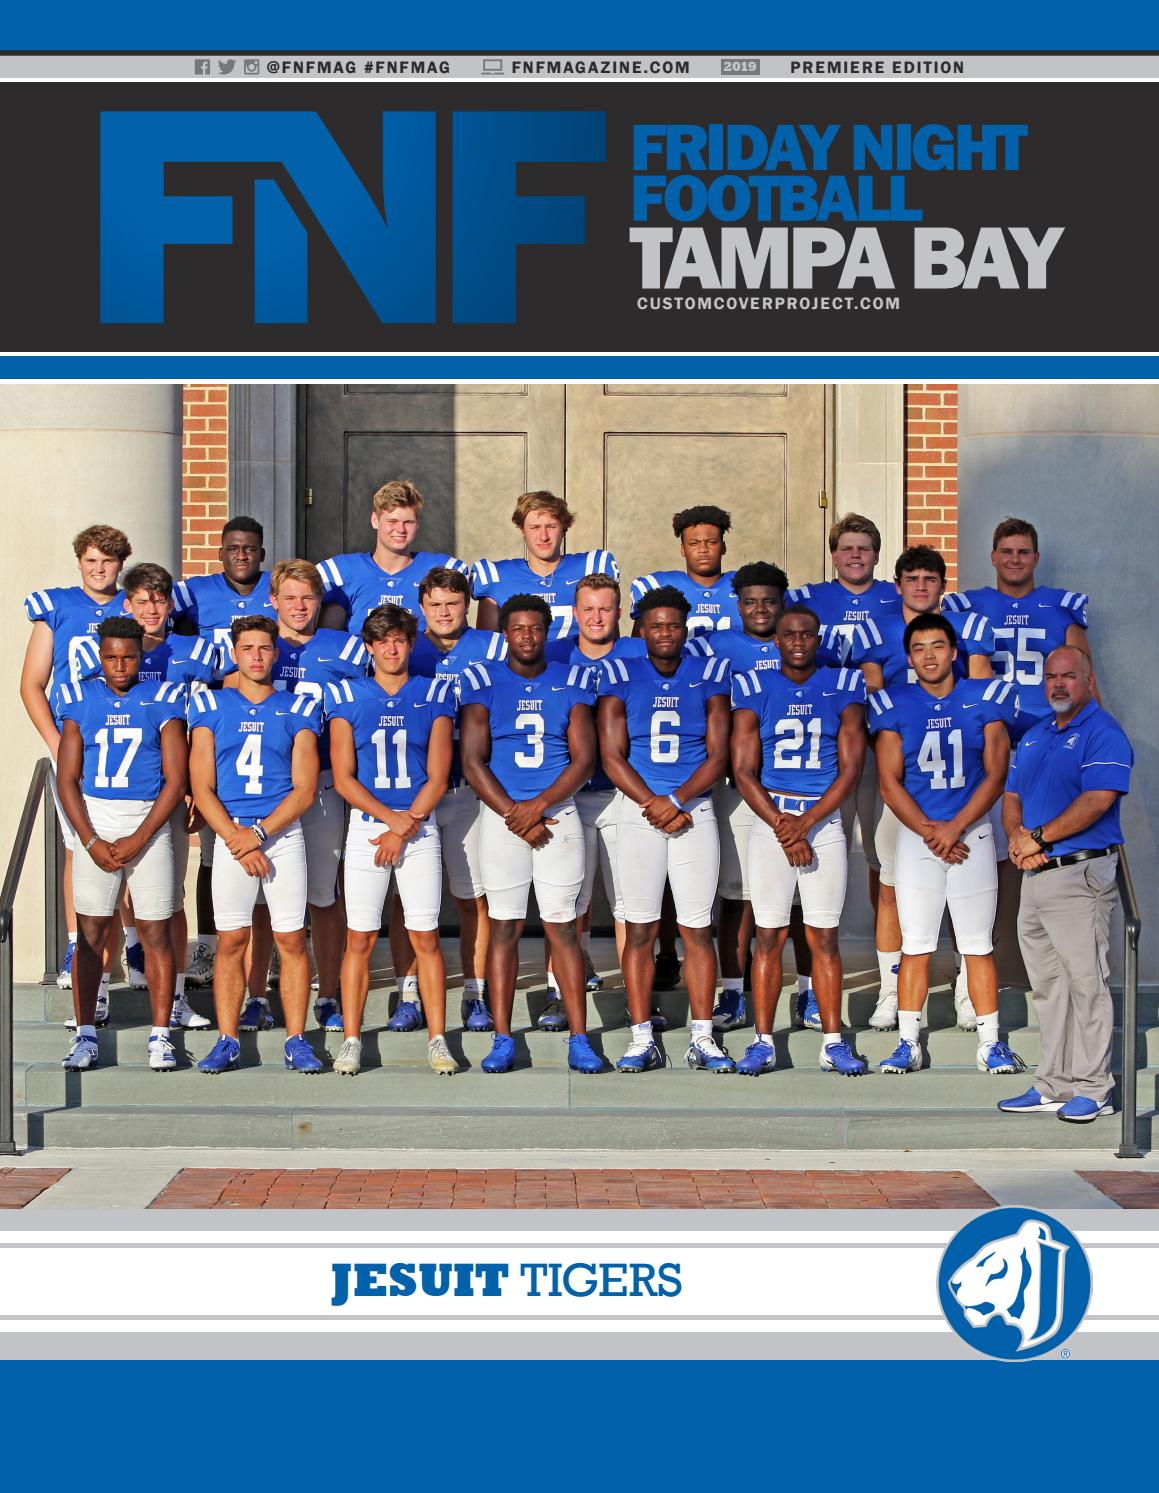 f75f7a5f FNF Tampa Bay Custom Cover Project 2019 Jesuit Tigers by A.E. Engine ...